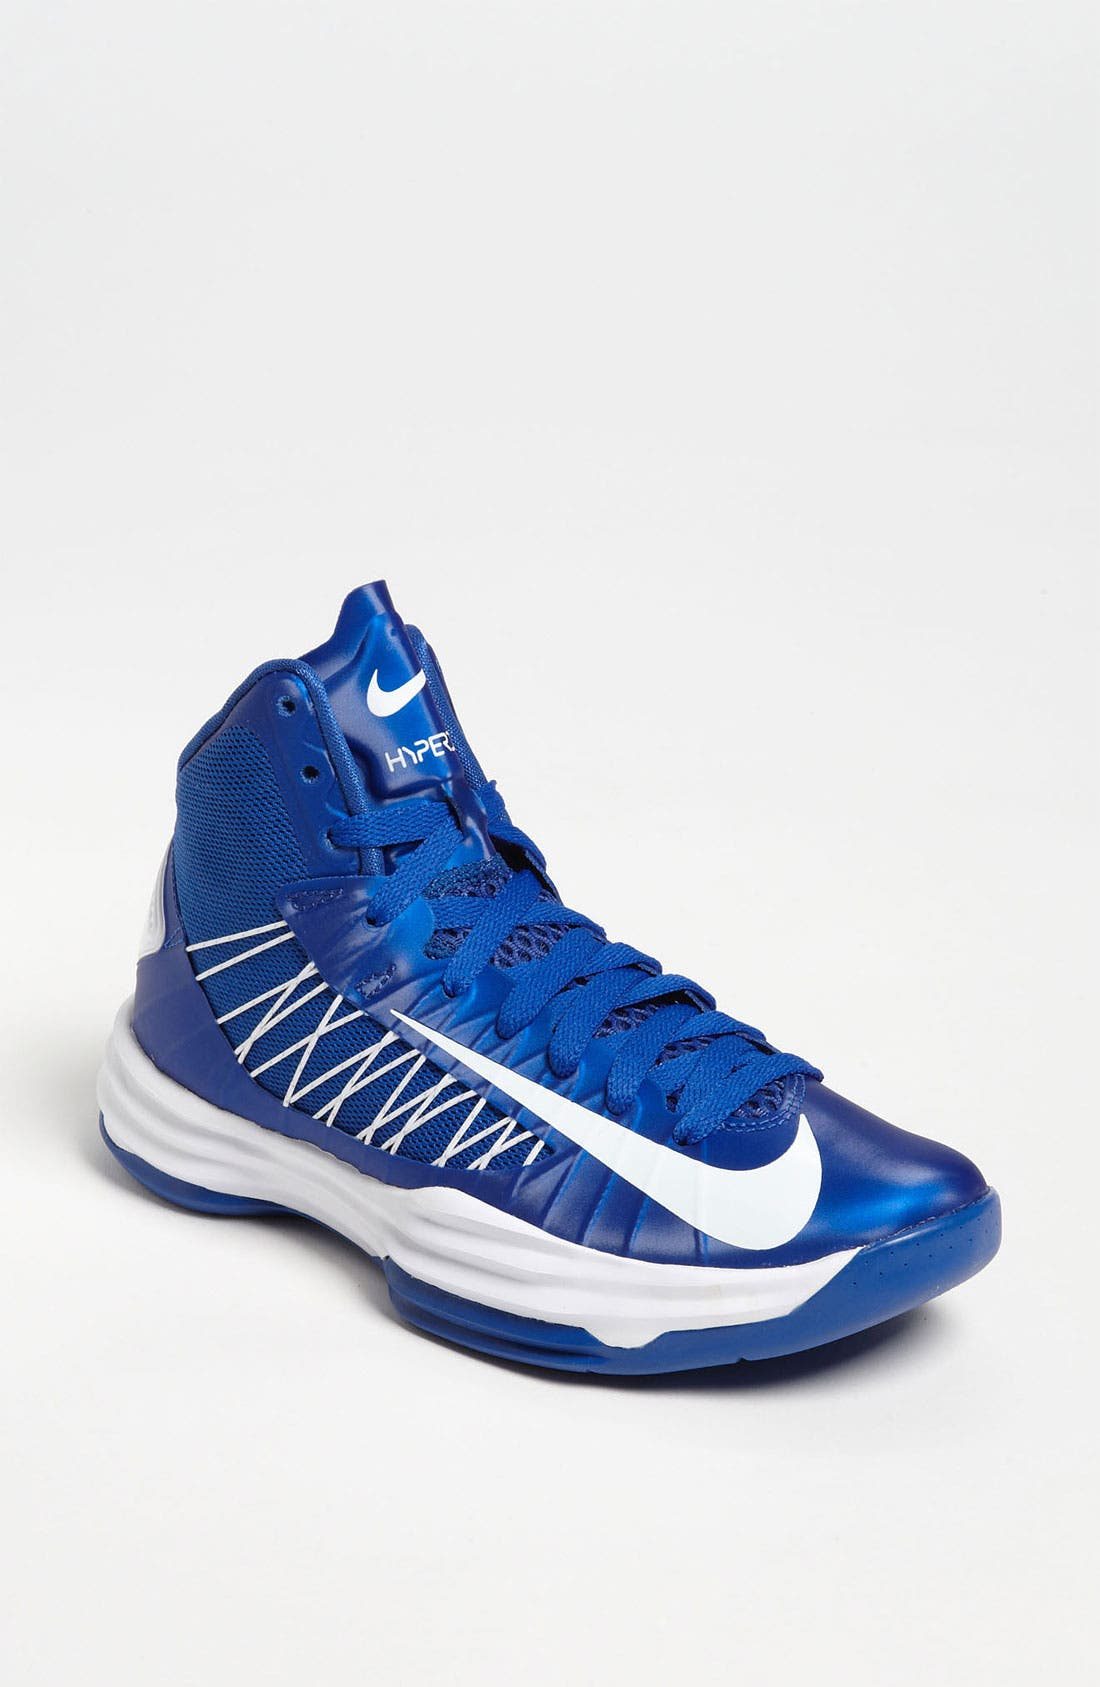 Alternate Image 1 Selected - Nike 'Lunar Hyperdunk' Basketball Shoe (Women)